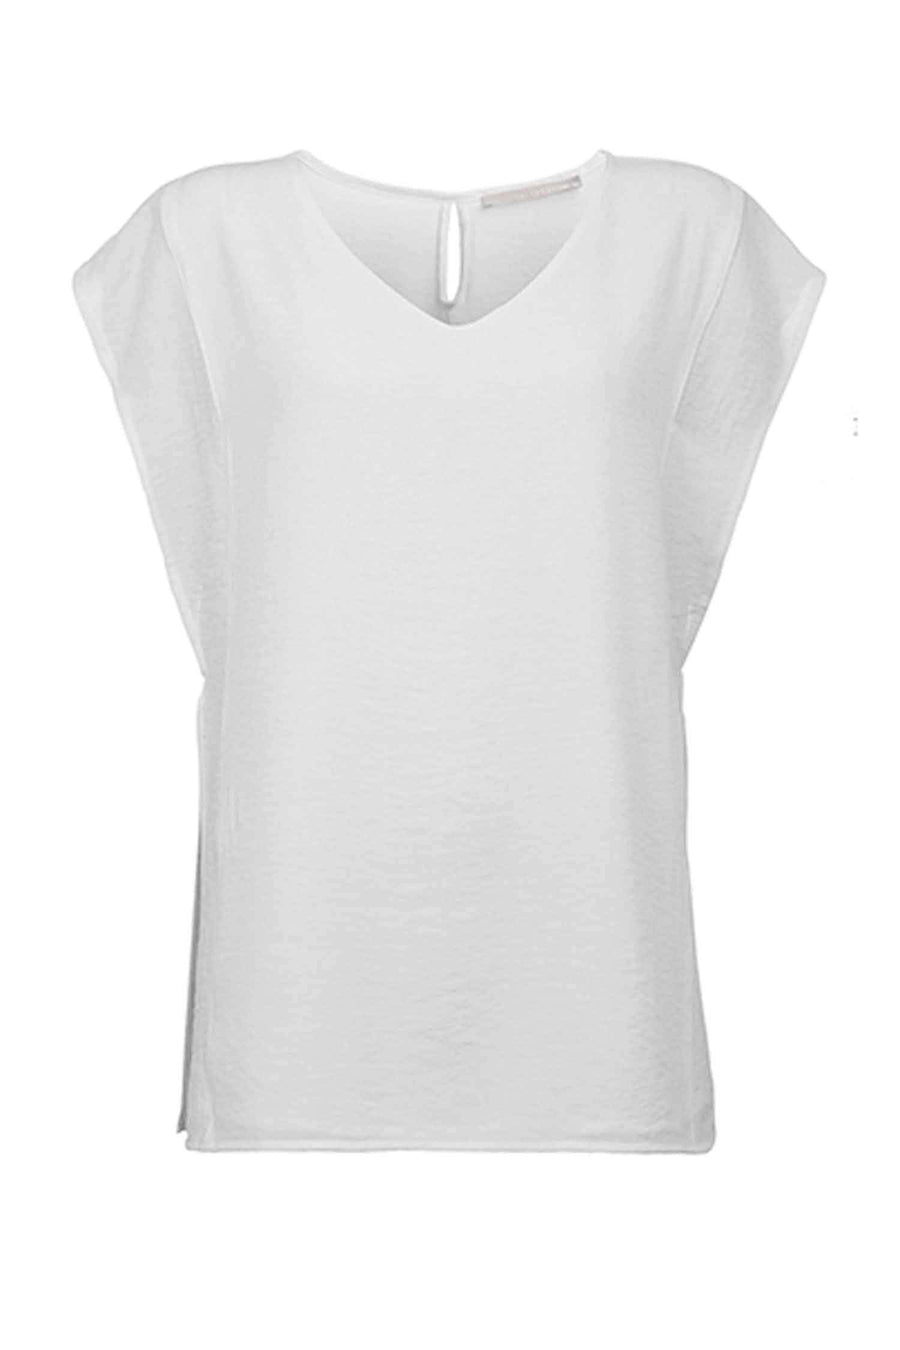 Shop Online Top Woven V-Neck in Pure White by Yaya | Frockaholics.com Tops